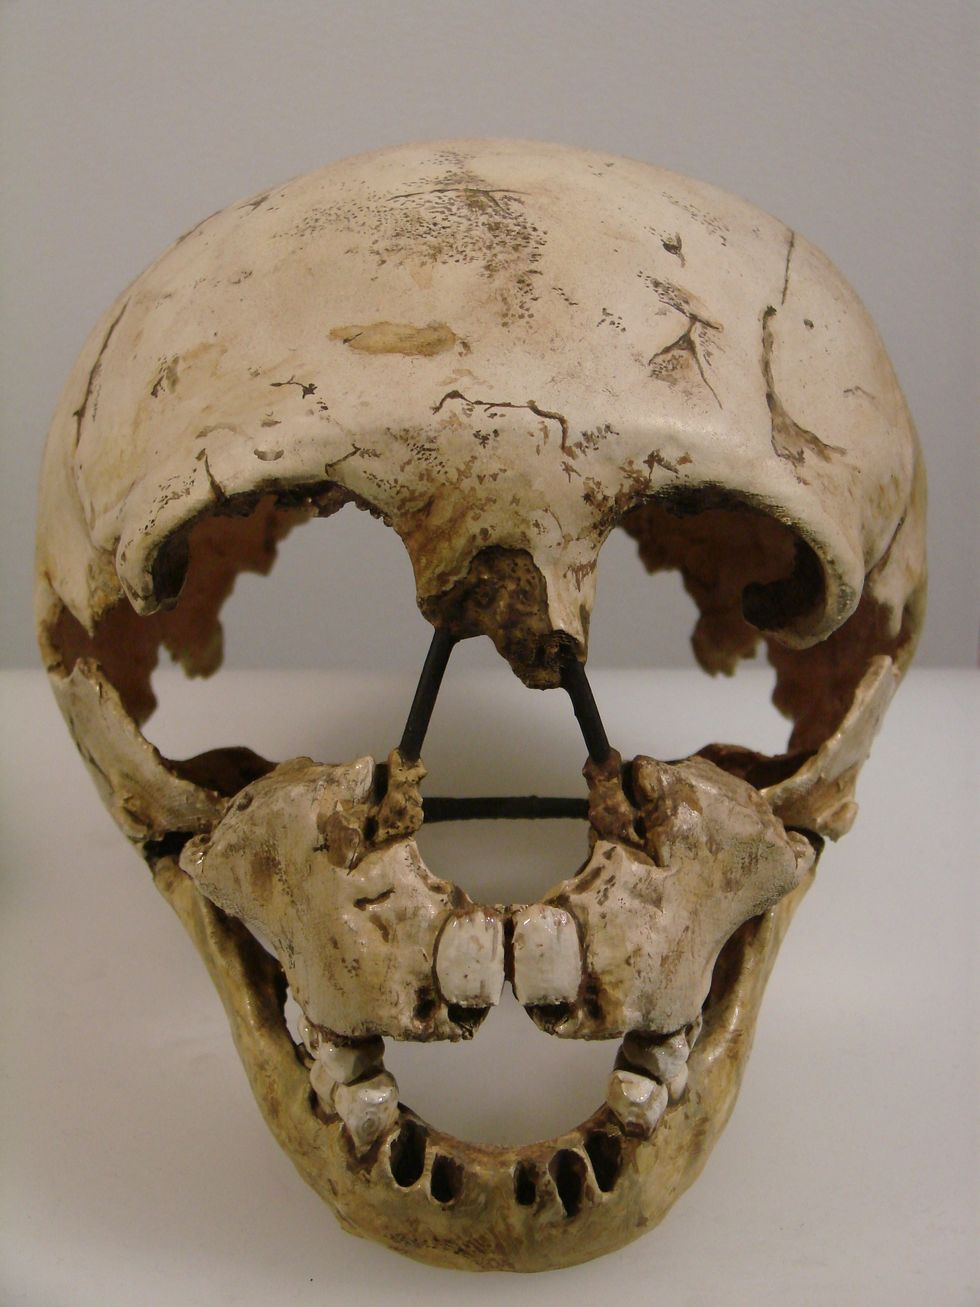 A Review Of The Article 'Neanderthals And Modern Behavior'